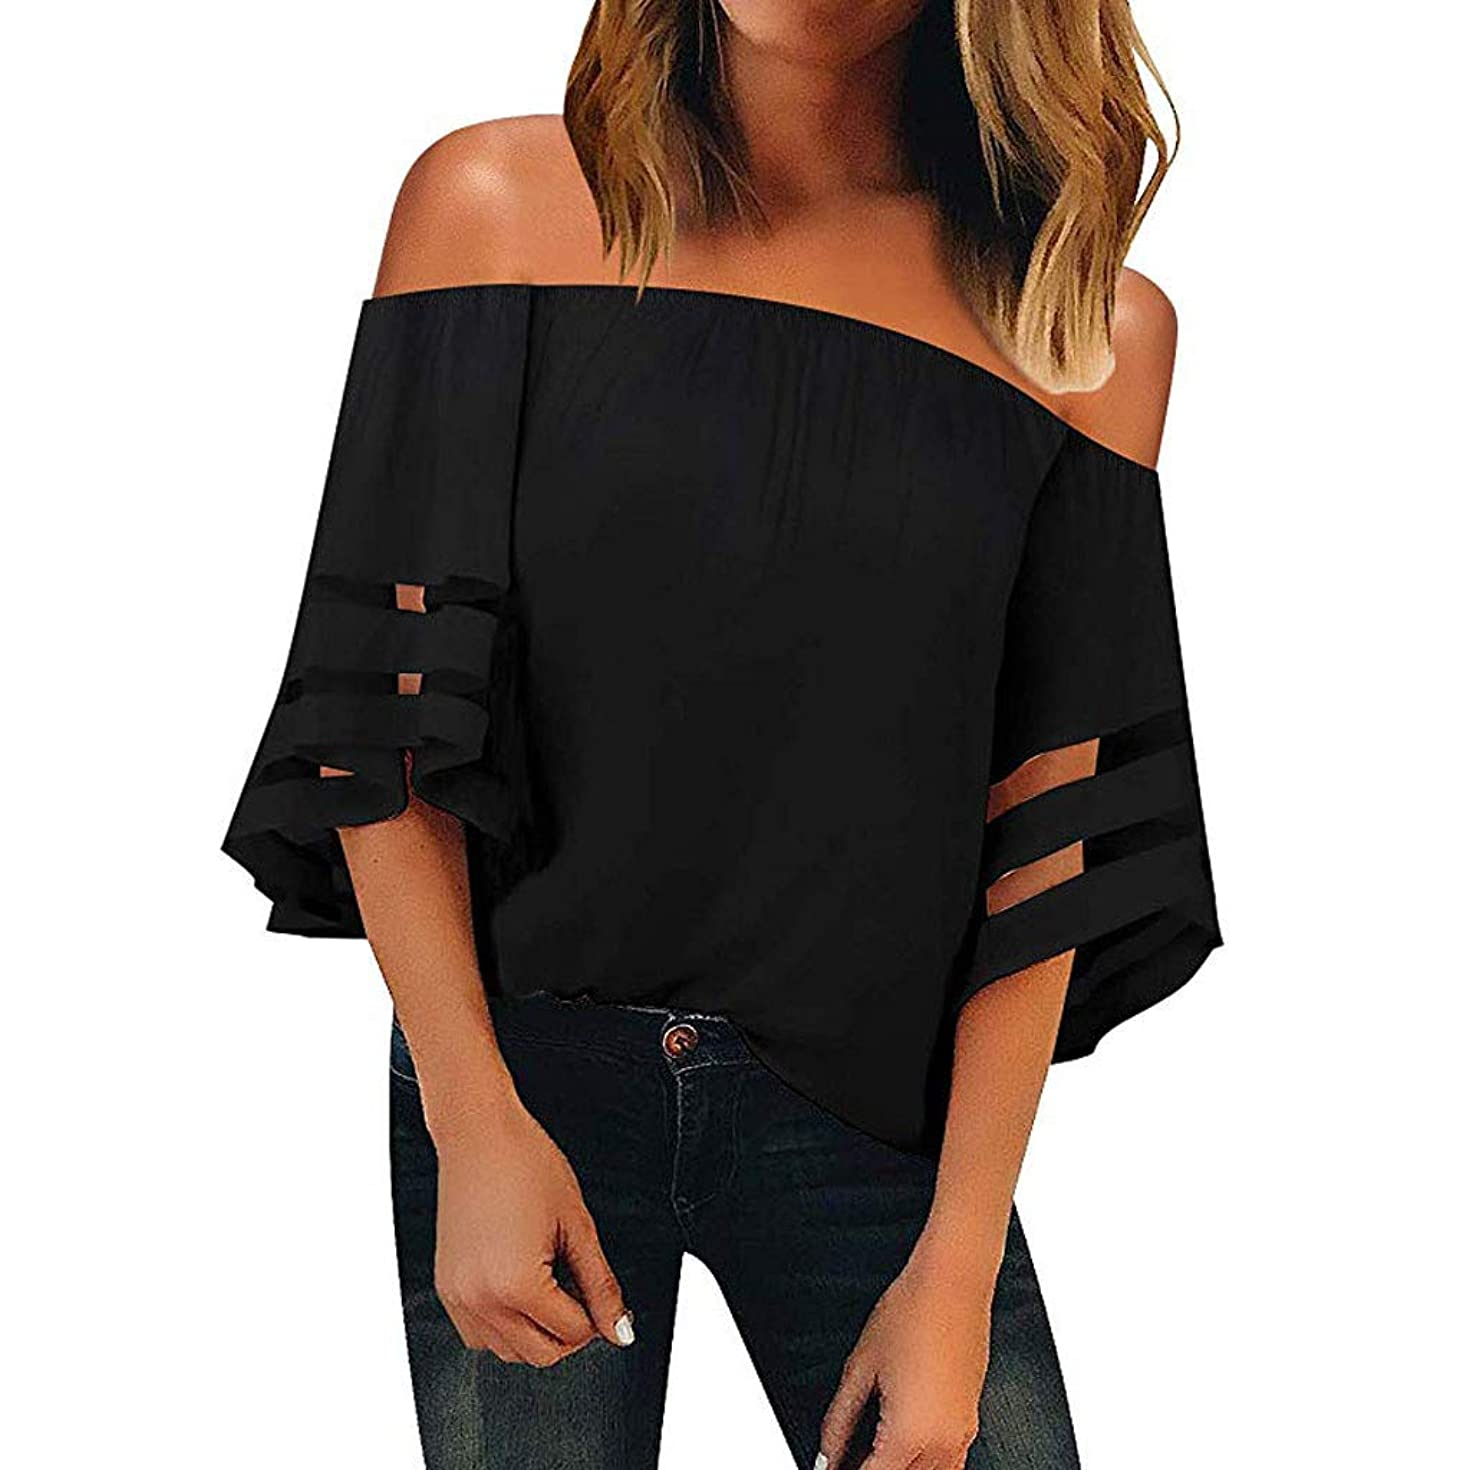 Cewtolkar Women Blouse Off Shoulder Tops Perspective Tees Cropped Sleeve Tunic Chiffon T Shirt Summer Top